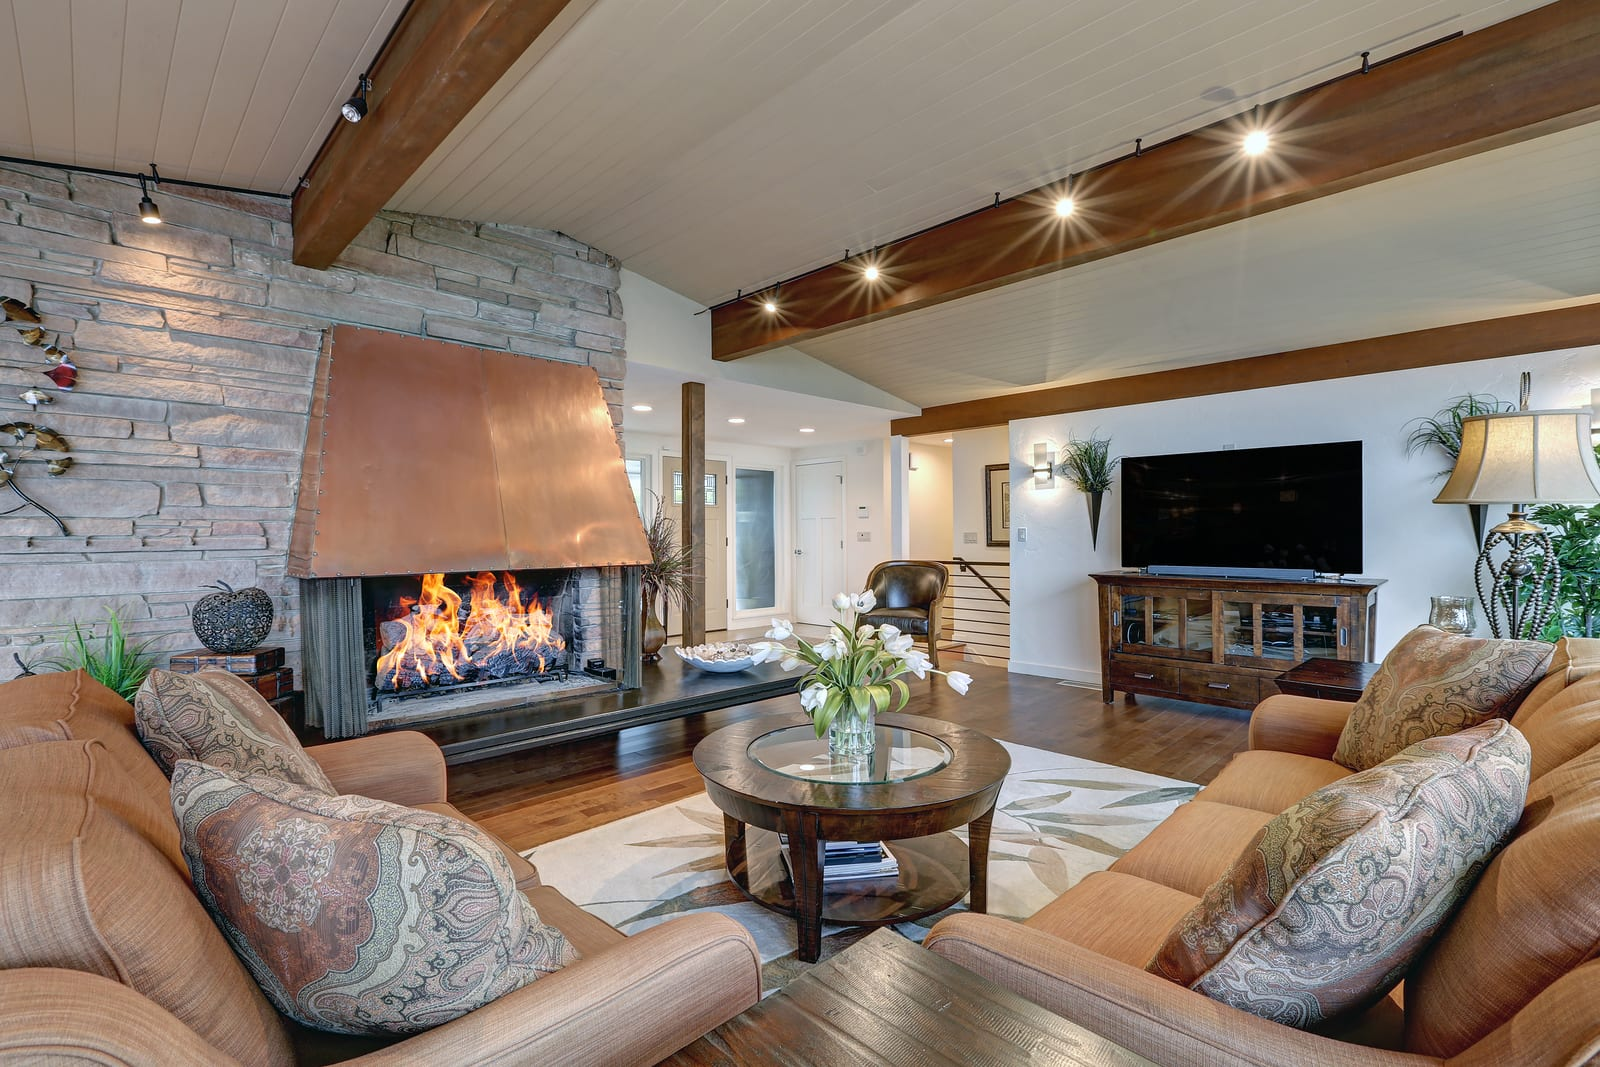 Beautiful panorama house interior features great room with white plank ceiling accented with wood beams over Cozy seating arrangement. Northwest, USA